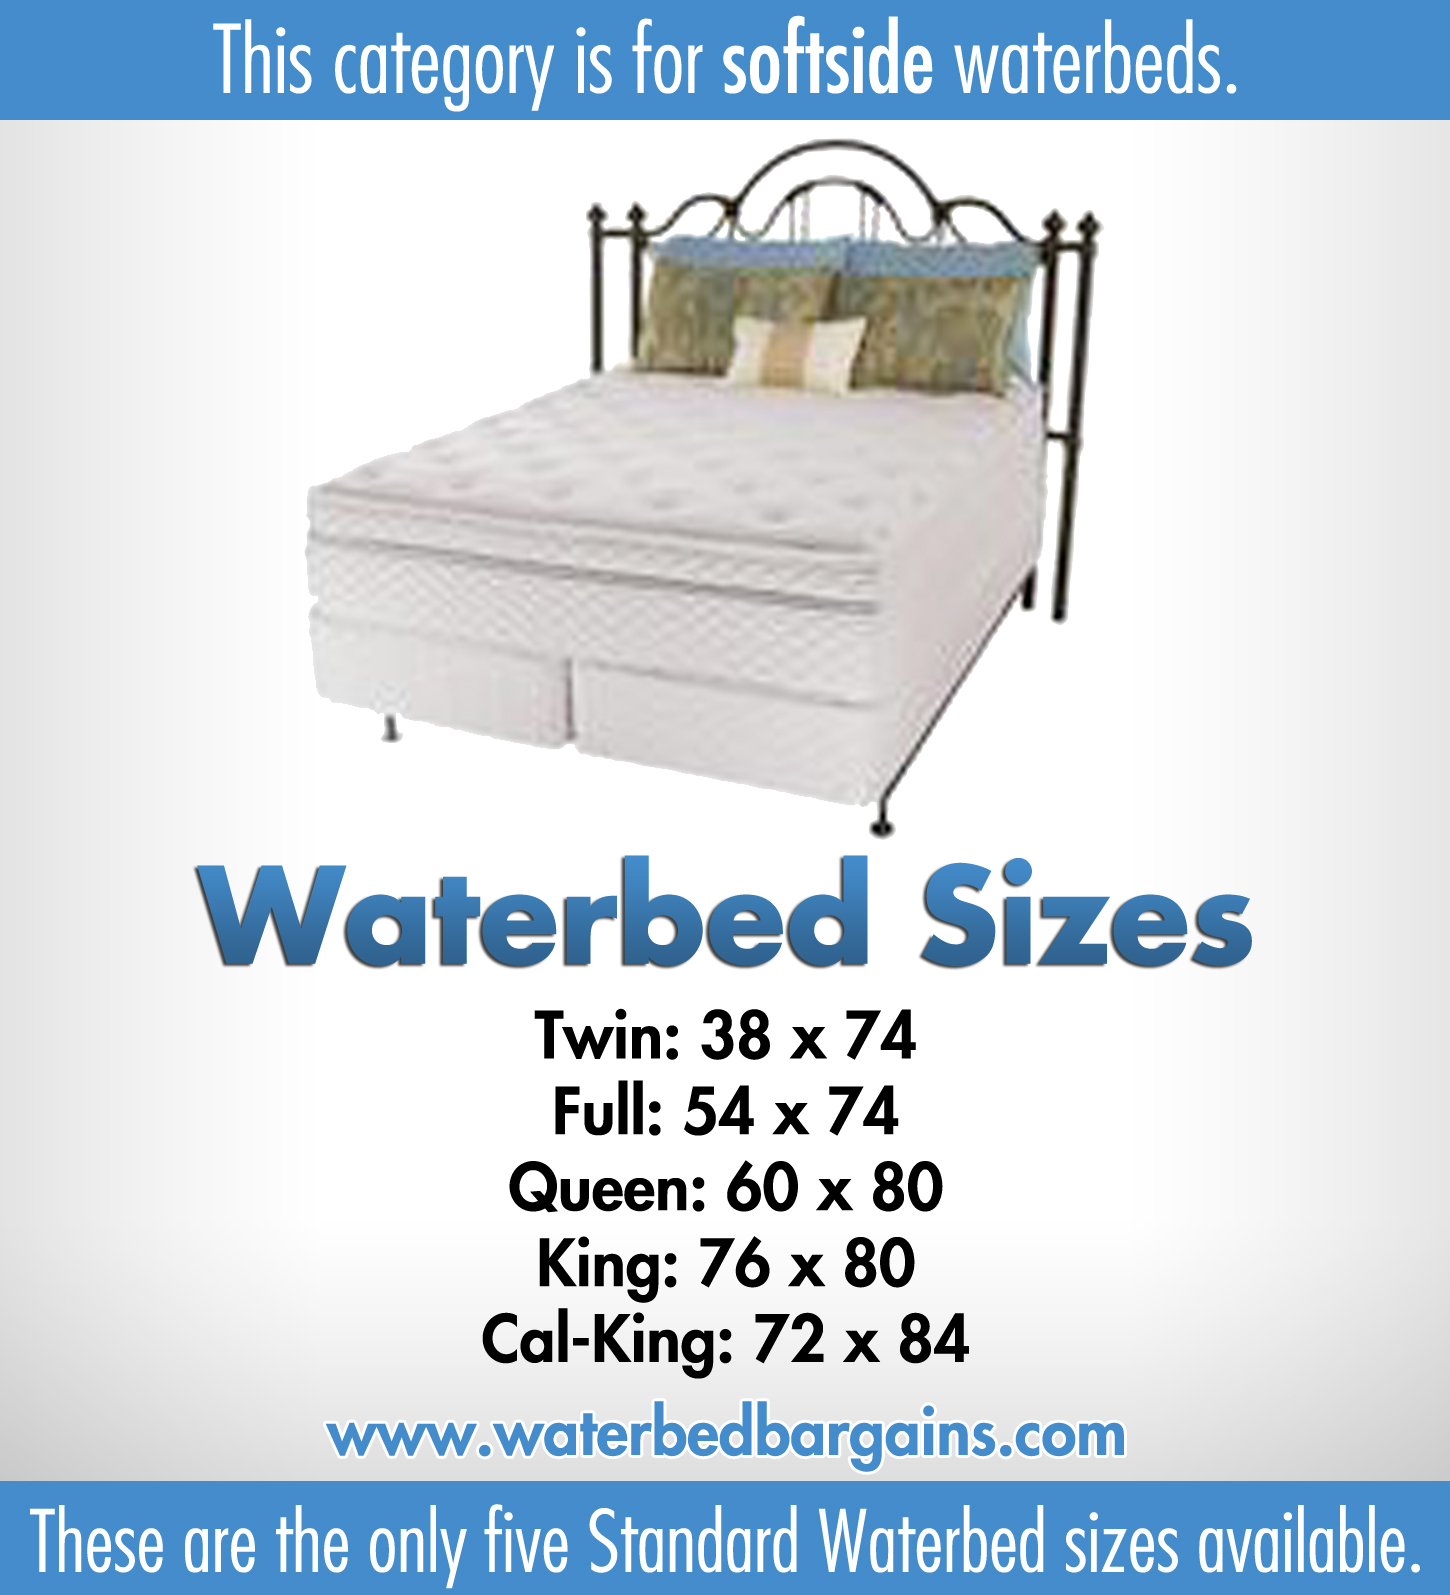 Softside Waterbed category description